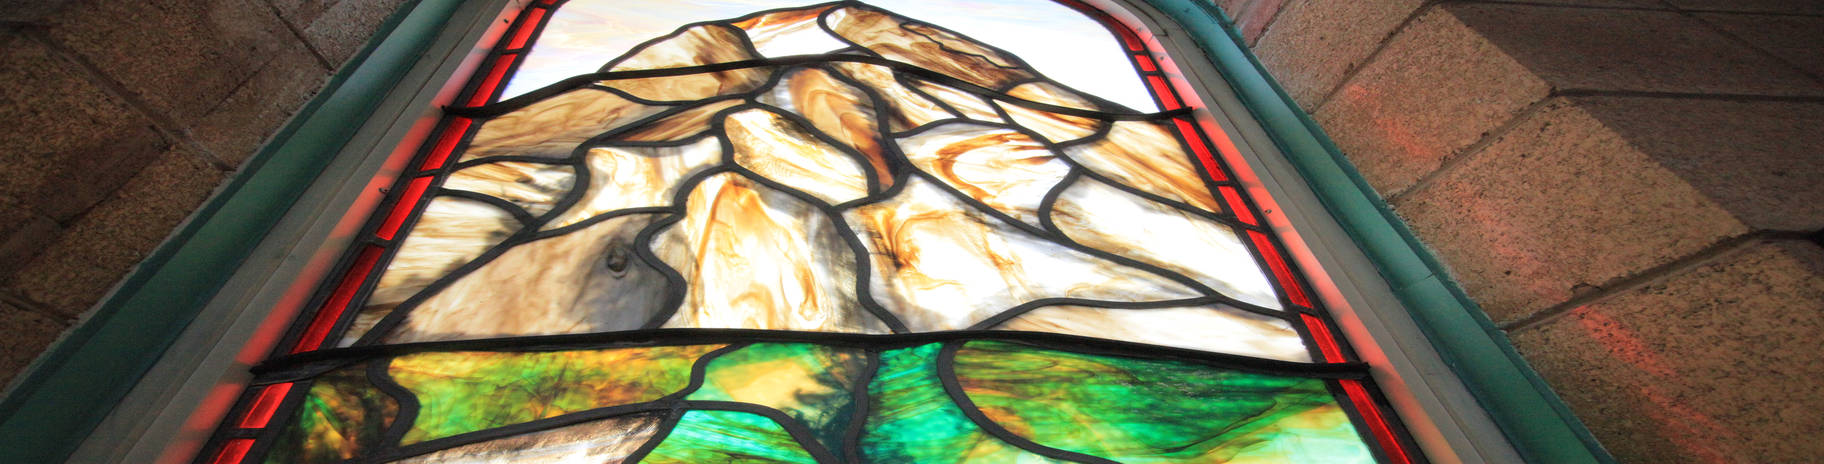 Mt. Zerin stained glass, at Zerin Place Senior Apartments, affordable housing project in London Ontario.